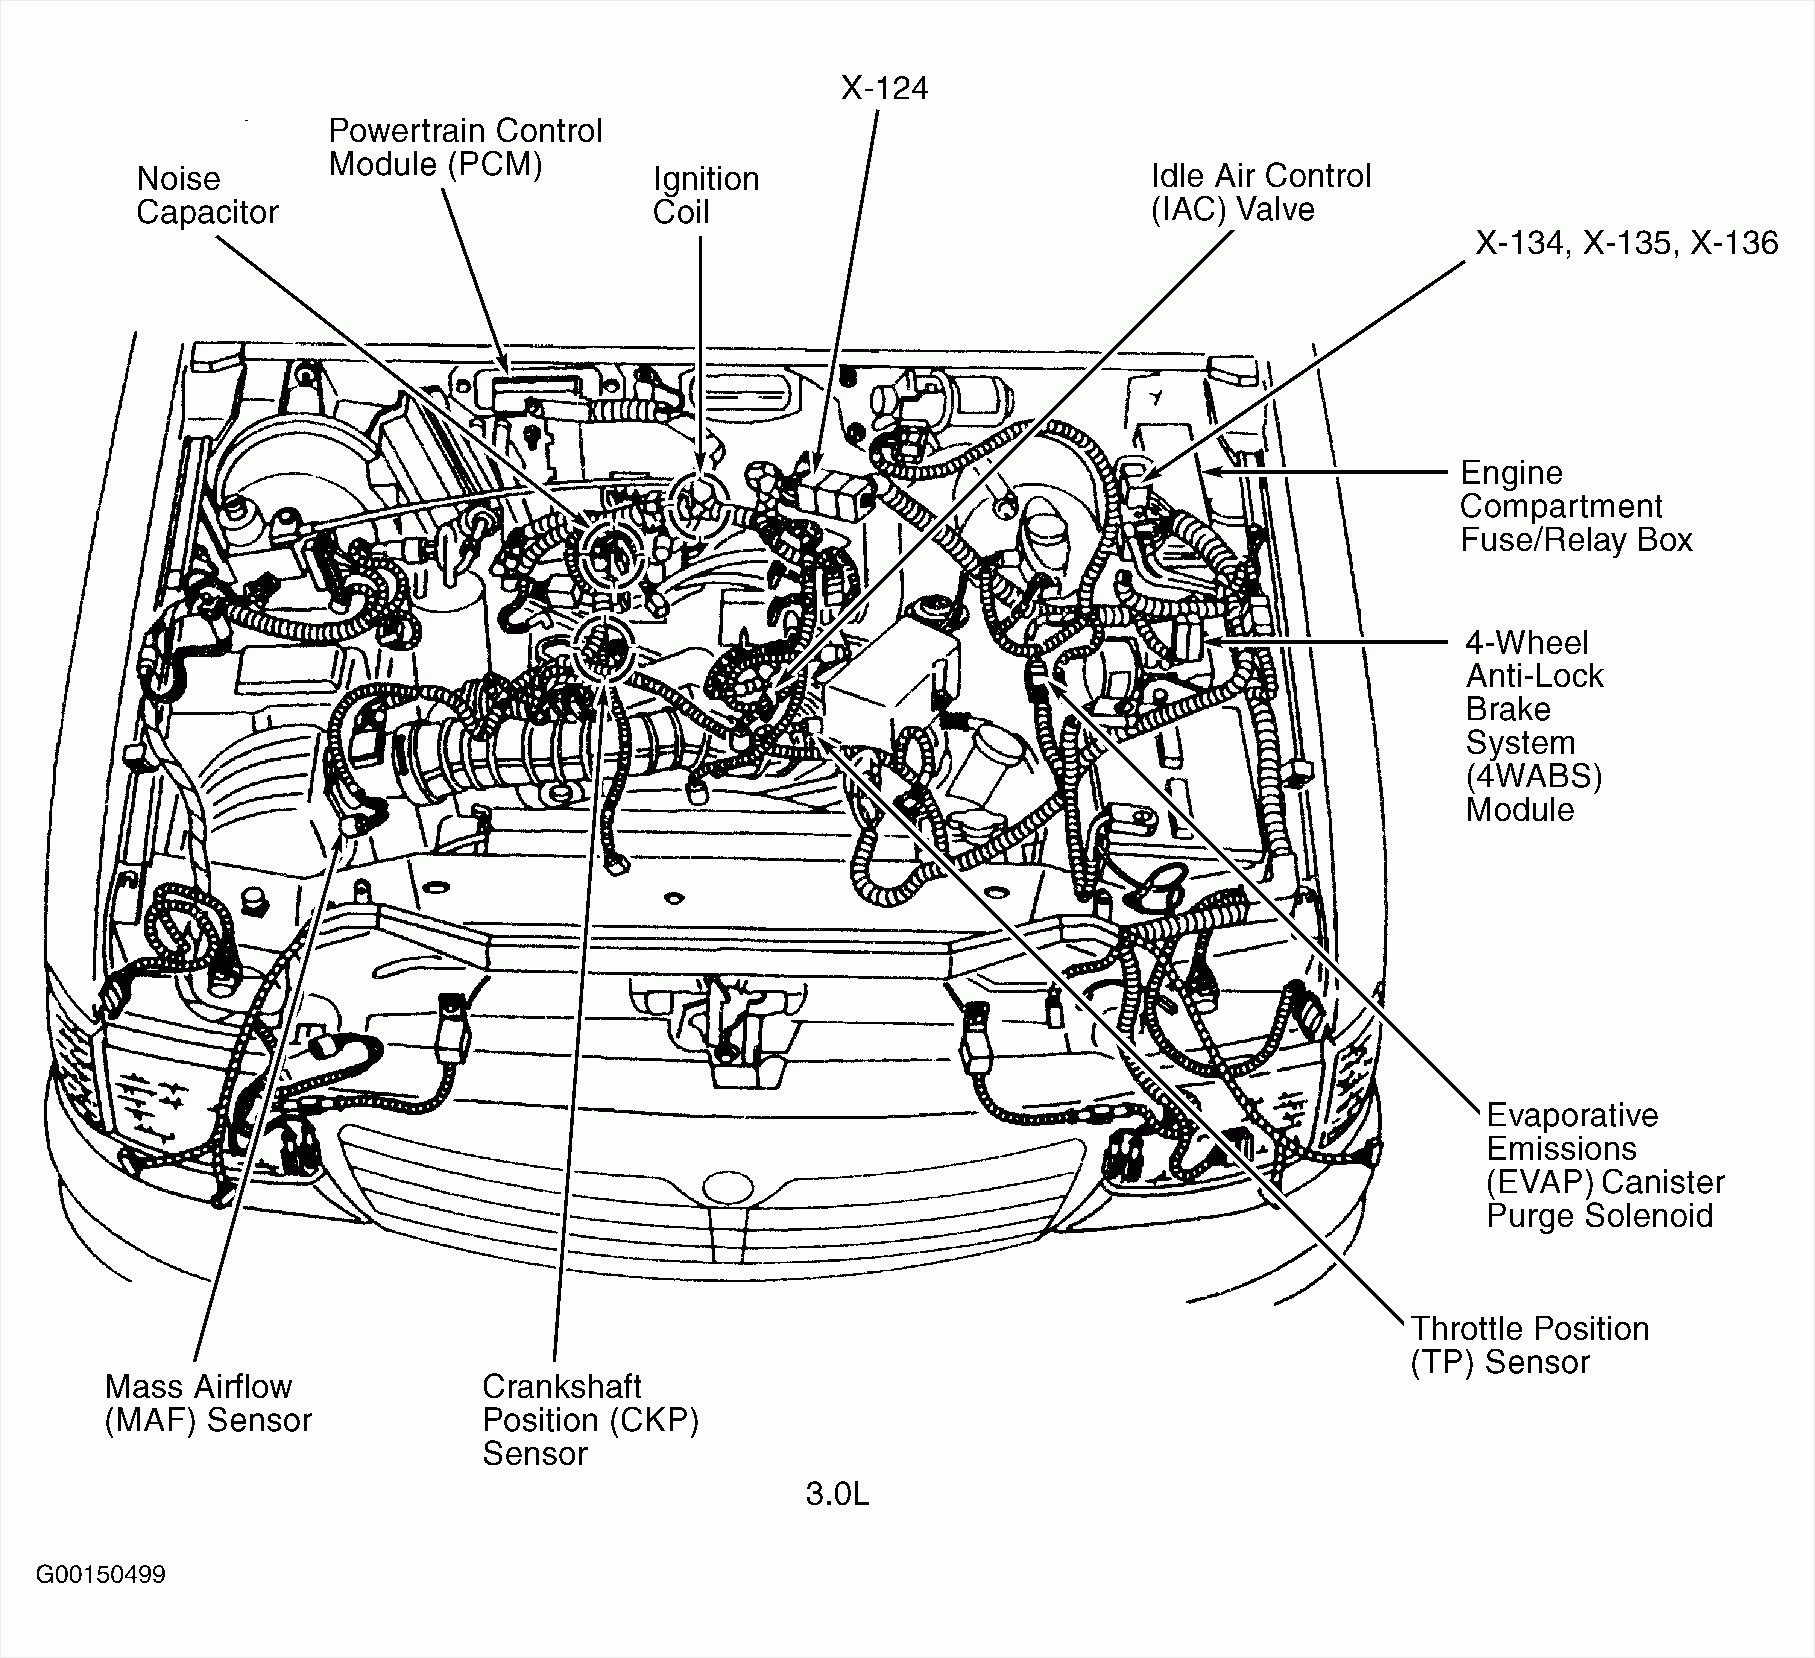 Honda Cd70 Engine Diagram Scooter Motorcycle Chinese Atv Valve Timing To Replace Belt Ford Ranger 3 Of